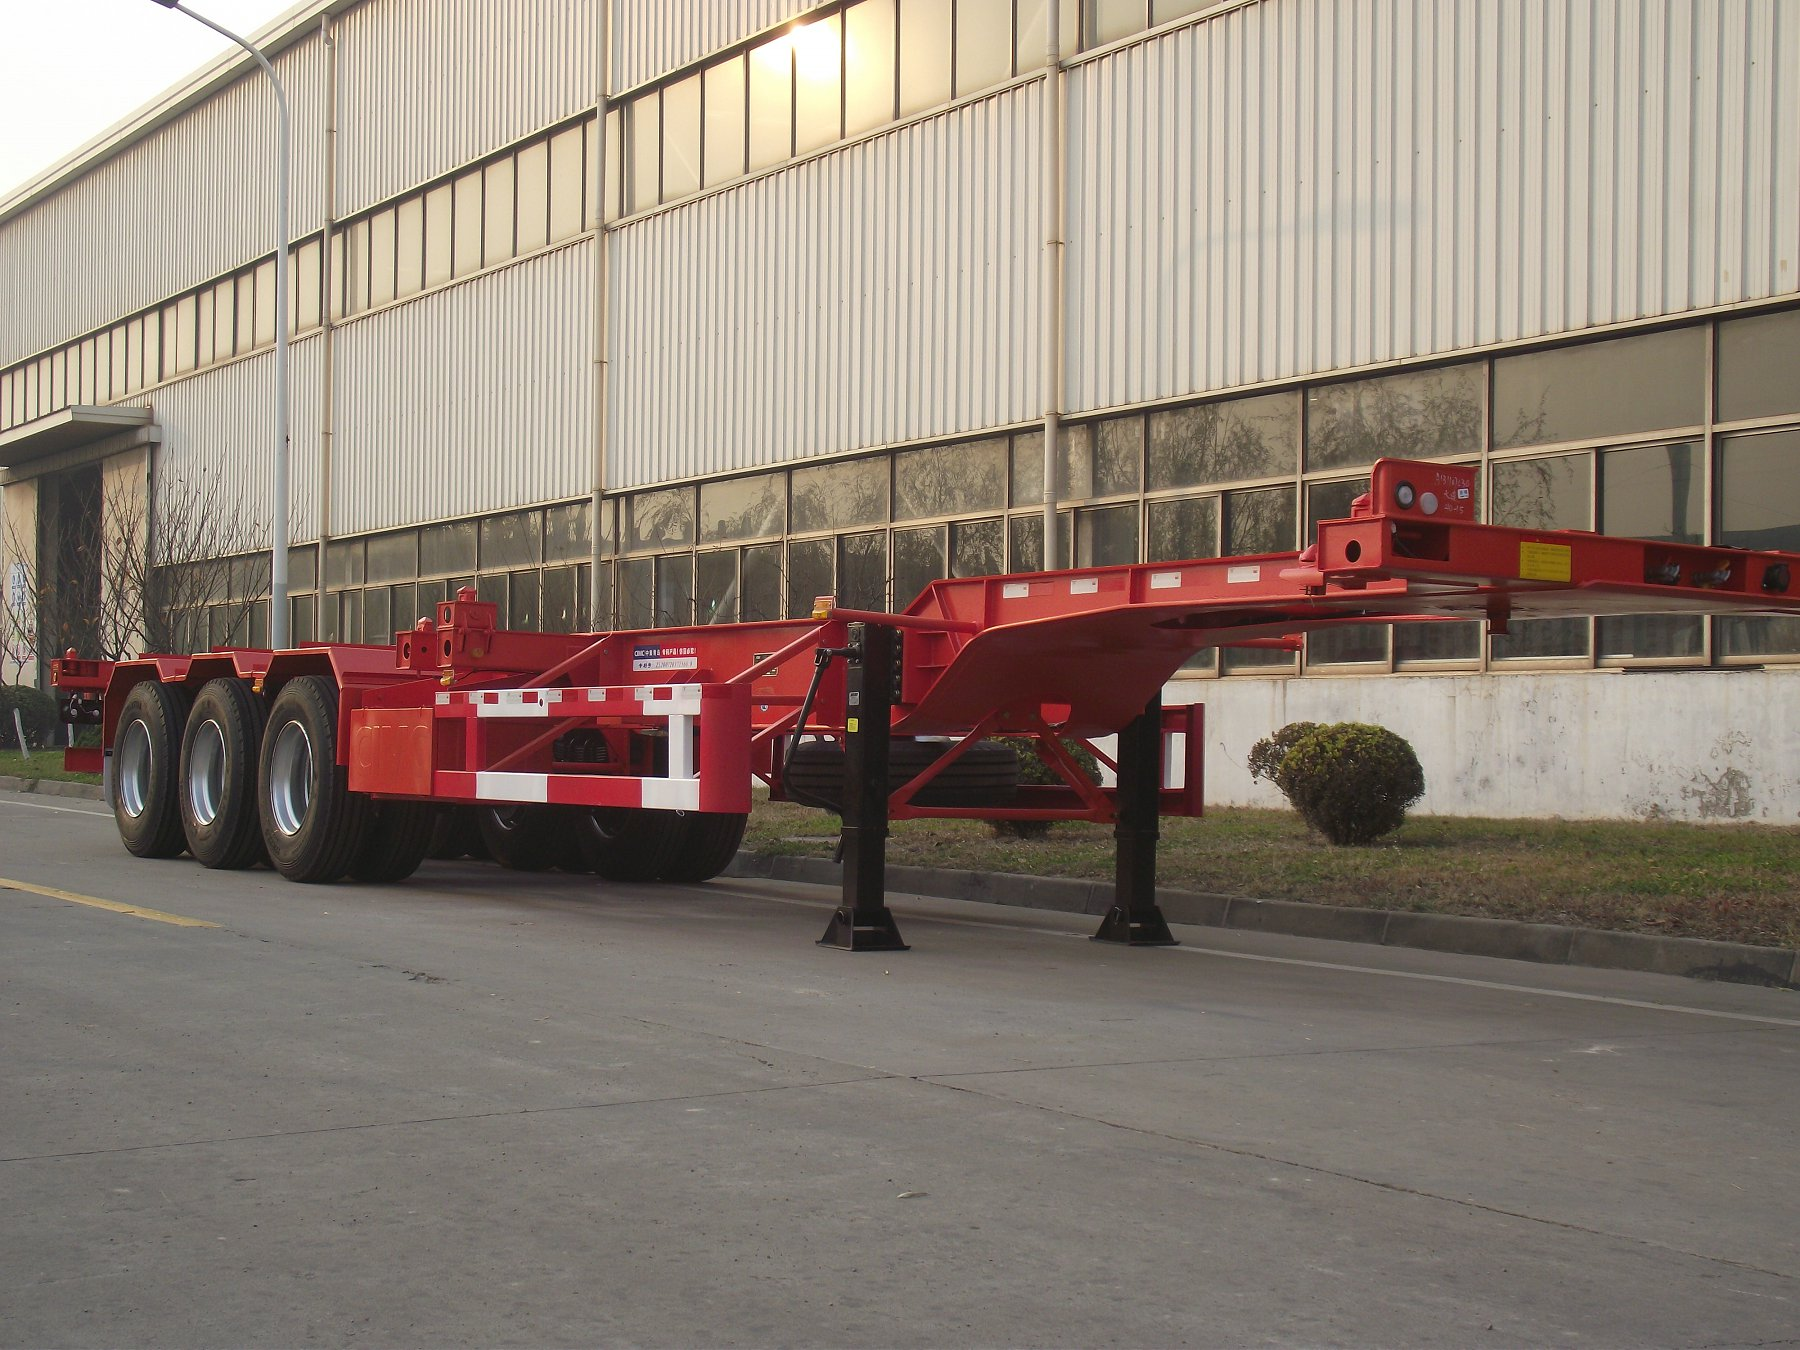 40'GN chassis with three axles